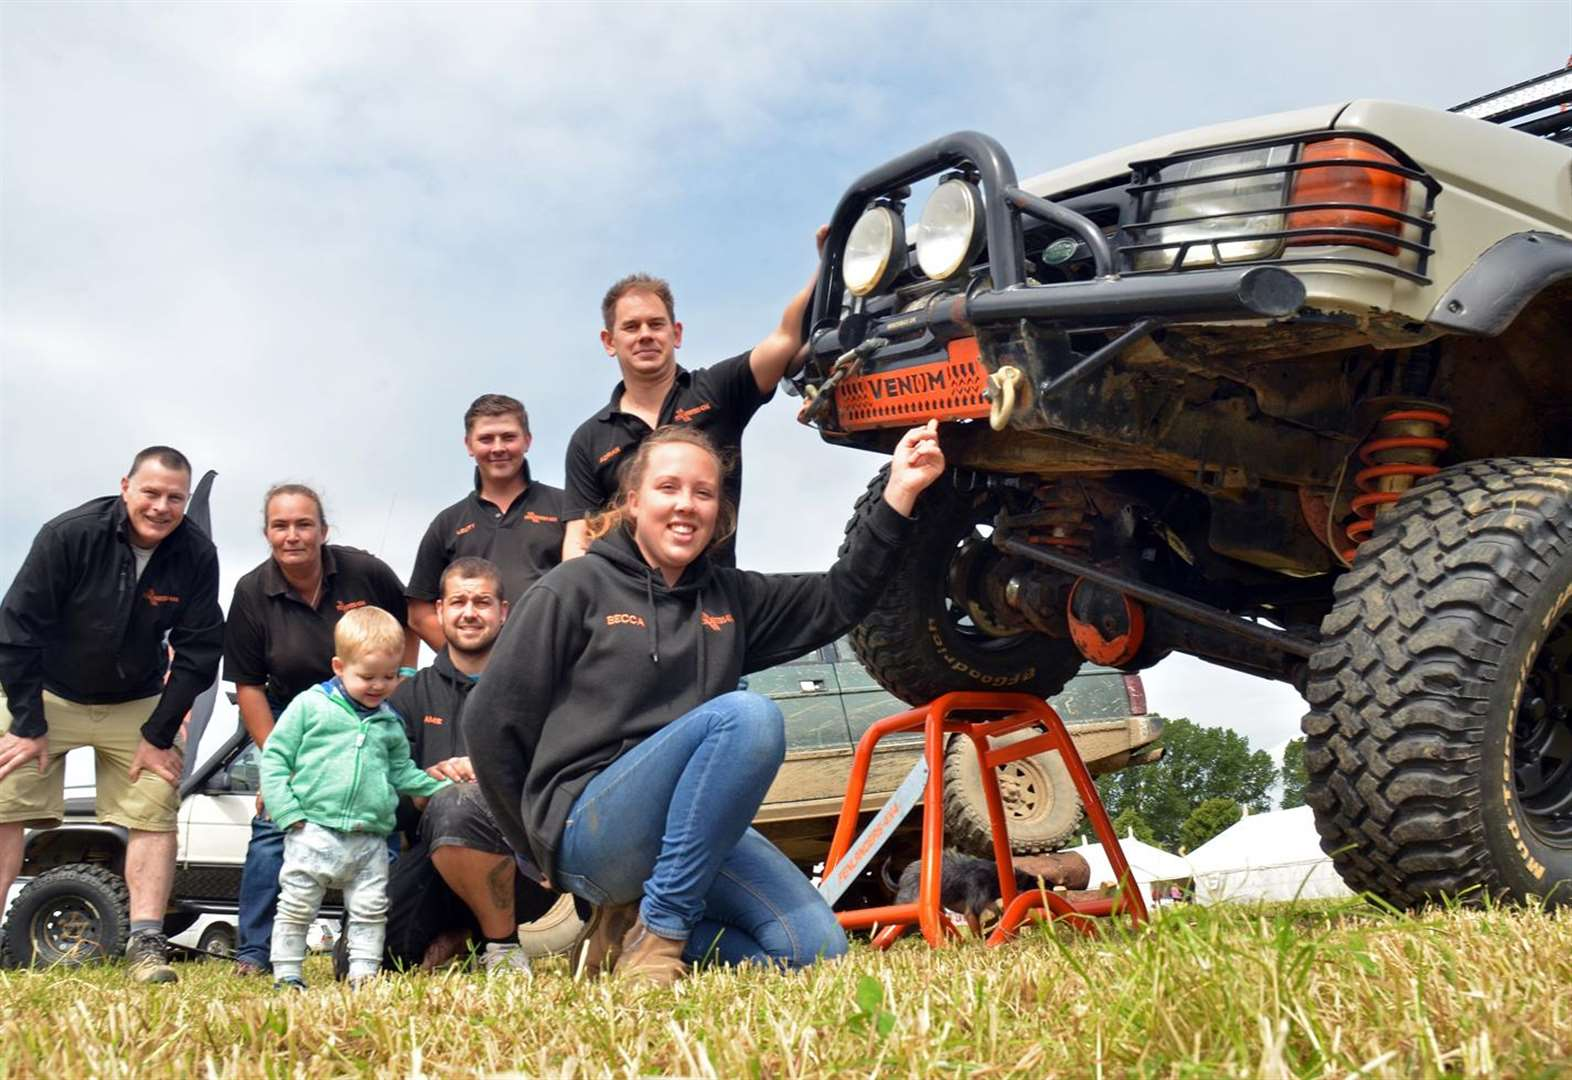 HOLBEACH TOWN AND COUNTRY FAYRE: Best-ever show for thousands at Kings Field